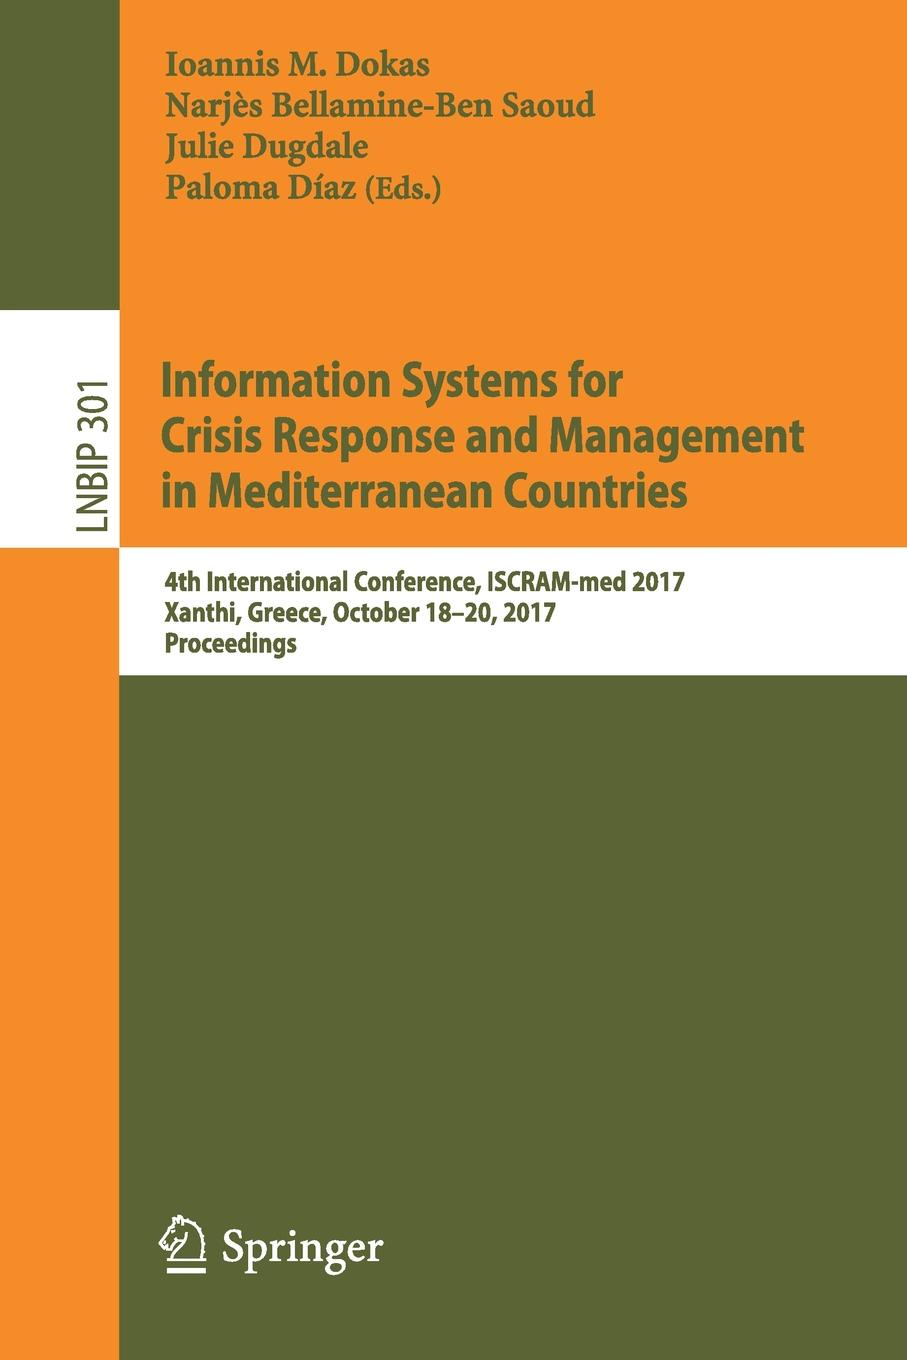 Information Systems for Crisis Response and Management in Mediterranean Countries. 4th International Conference, ISCRAM-med 2017, Xanthi, Greece, October 18-20, 2017, Proceedings